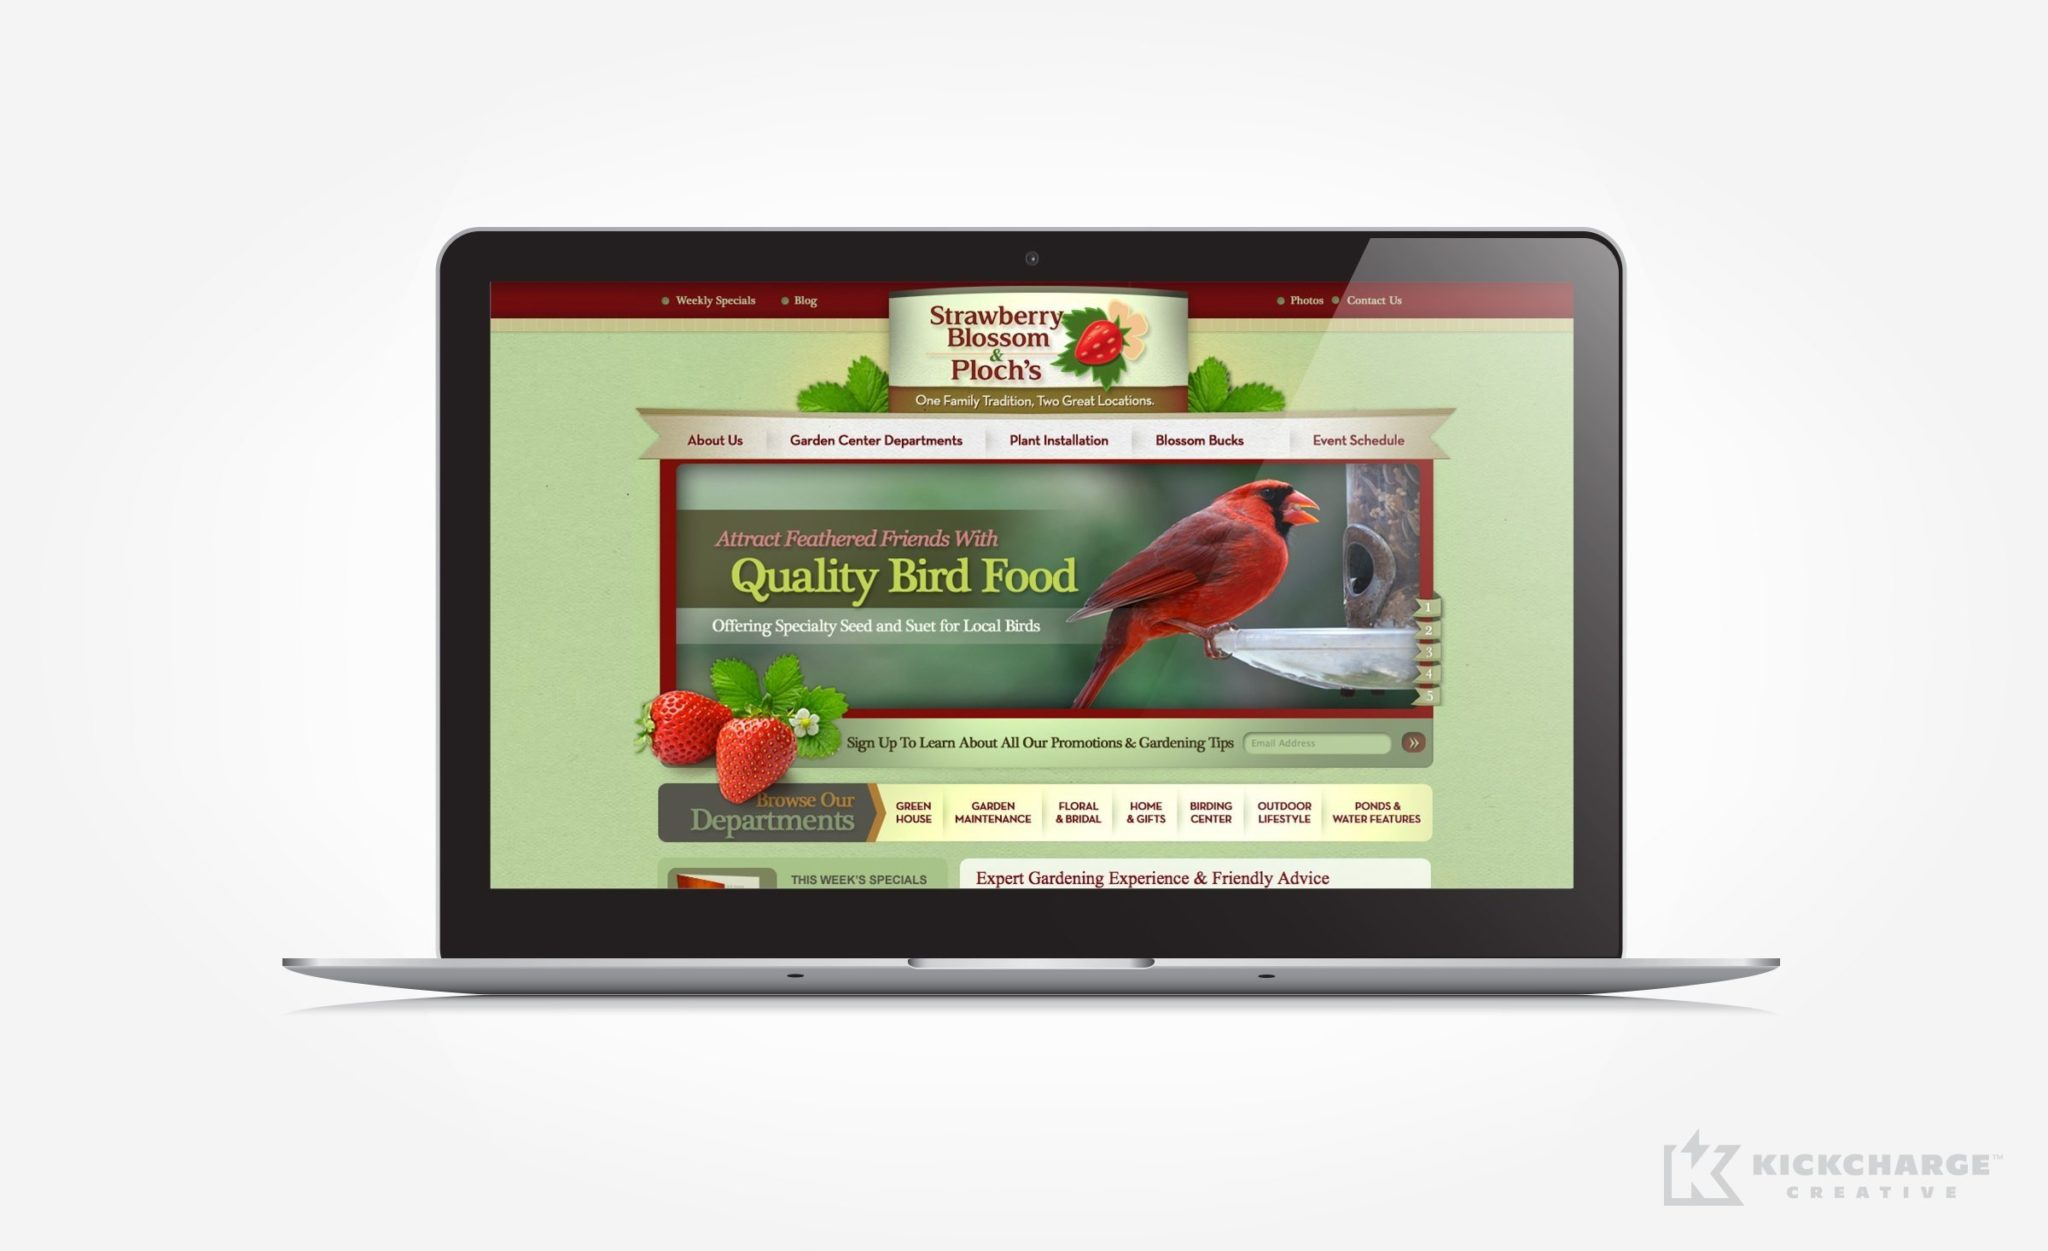 Web design for home and garden center that has two large retail locations in New Jersey.